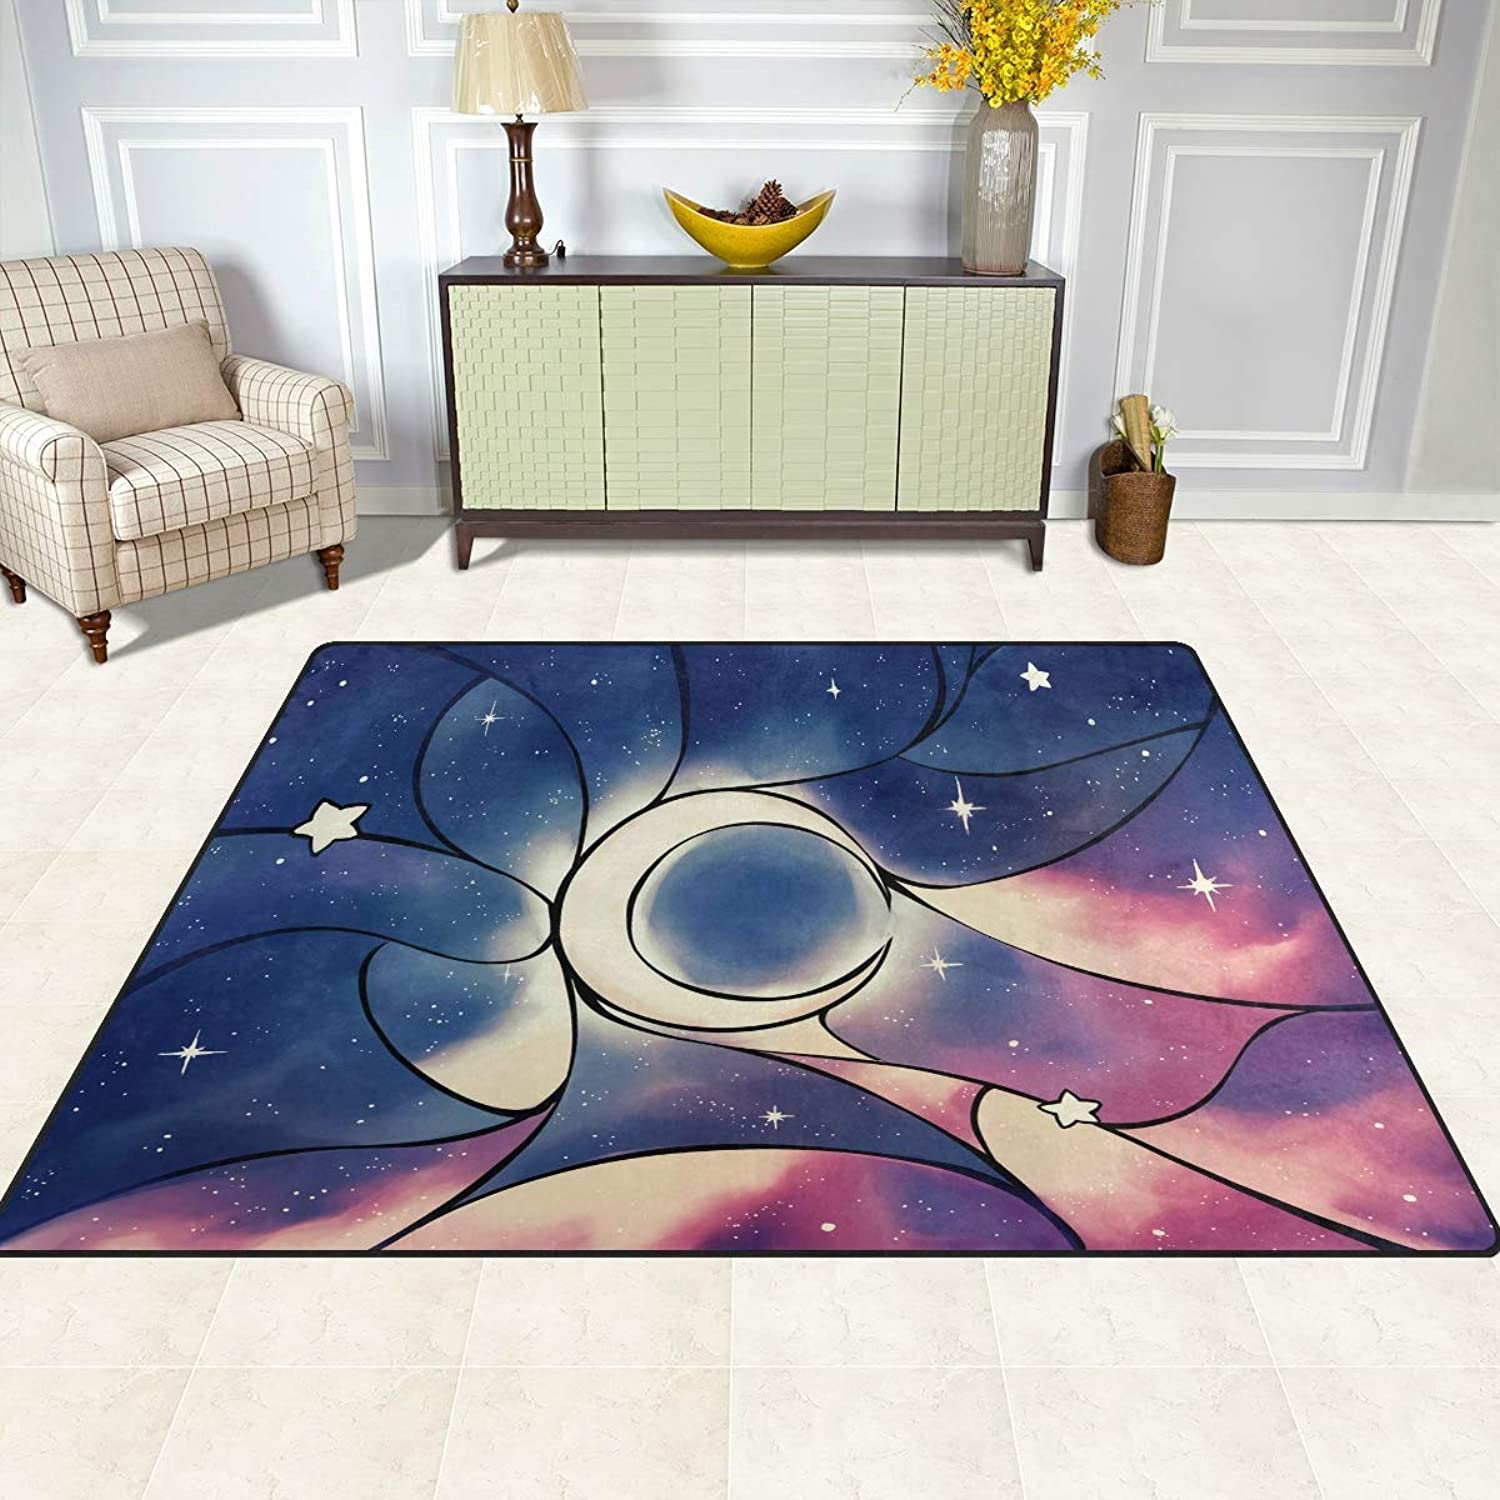 FAJRO Fairytale Moon Rugs for entryway Doormat Area Rug Multipattern Door Mat shoes Scraper Home Dec Anti-Slip Indoor Outdoor